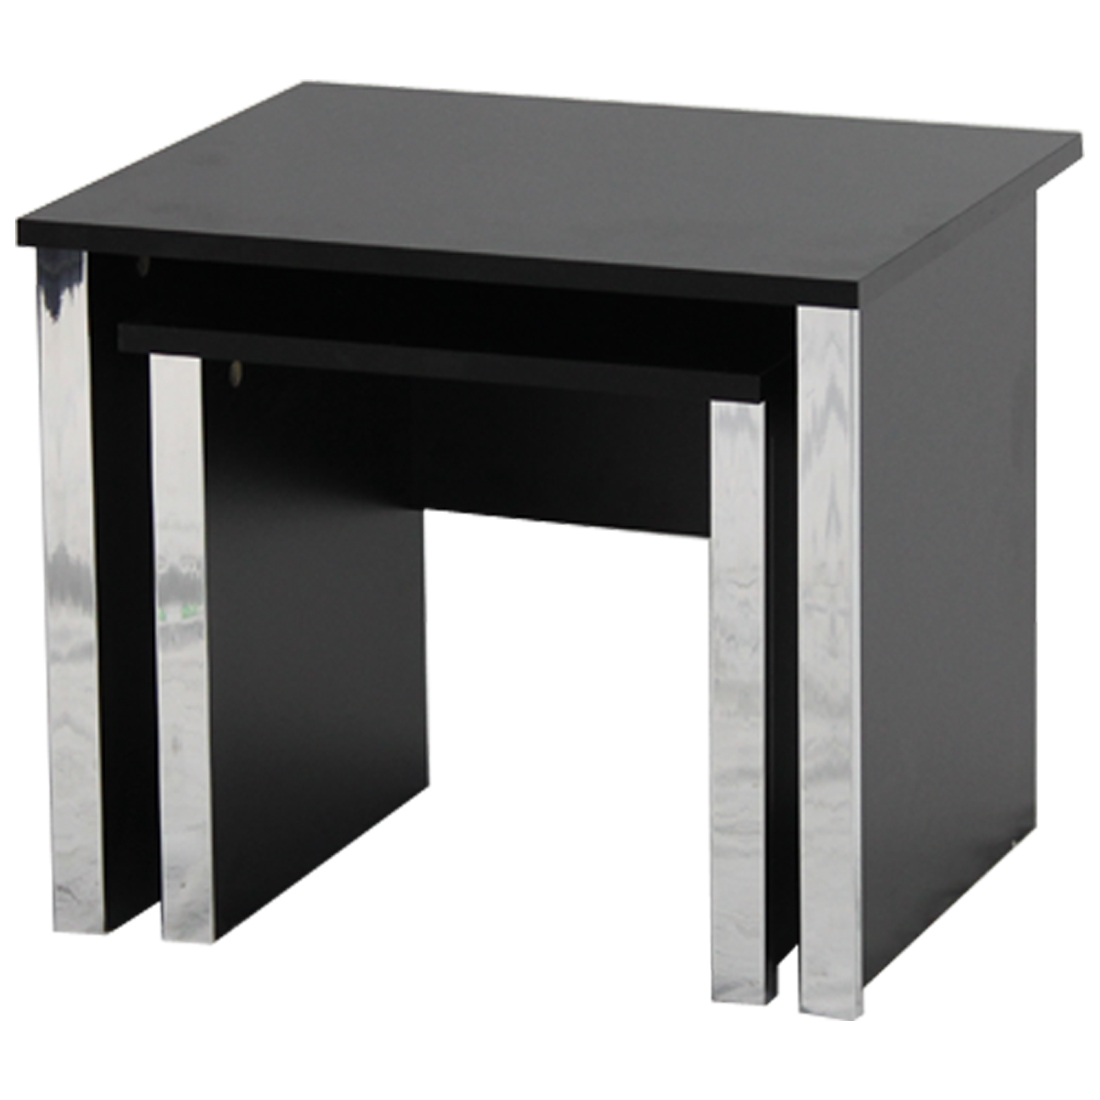 GOSPORT NEST OF TABLES BLACK